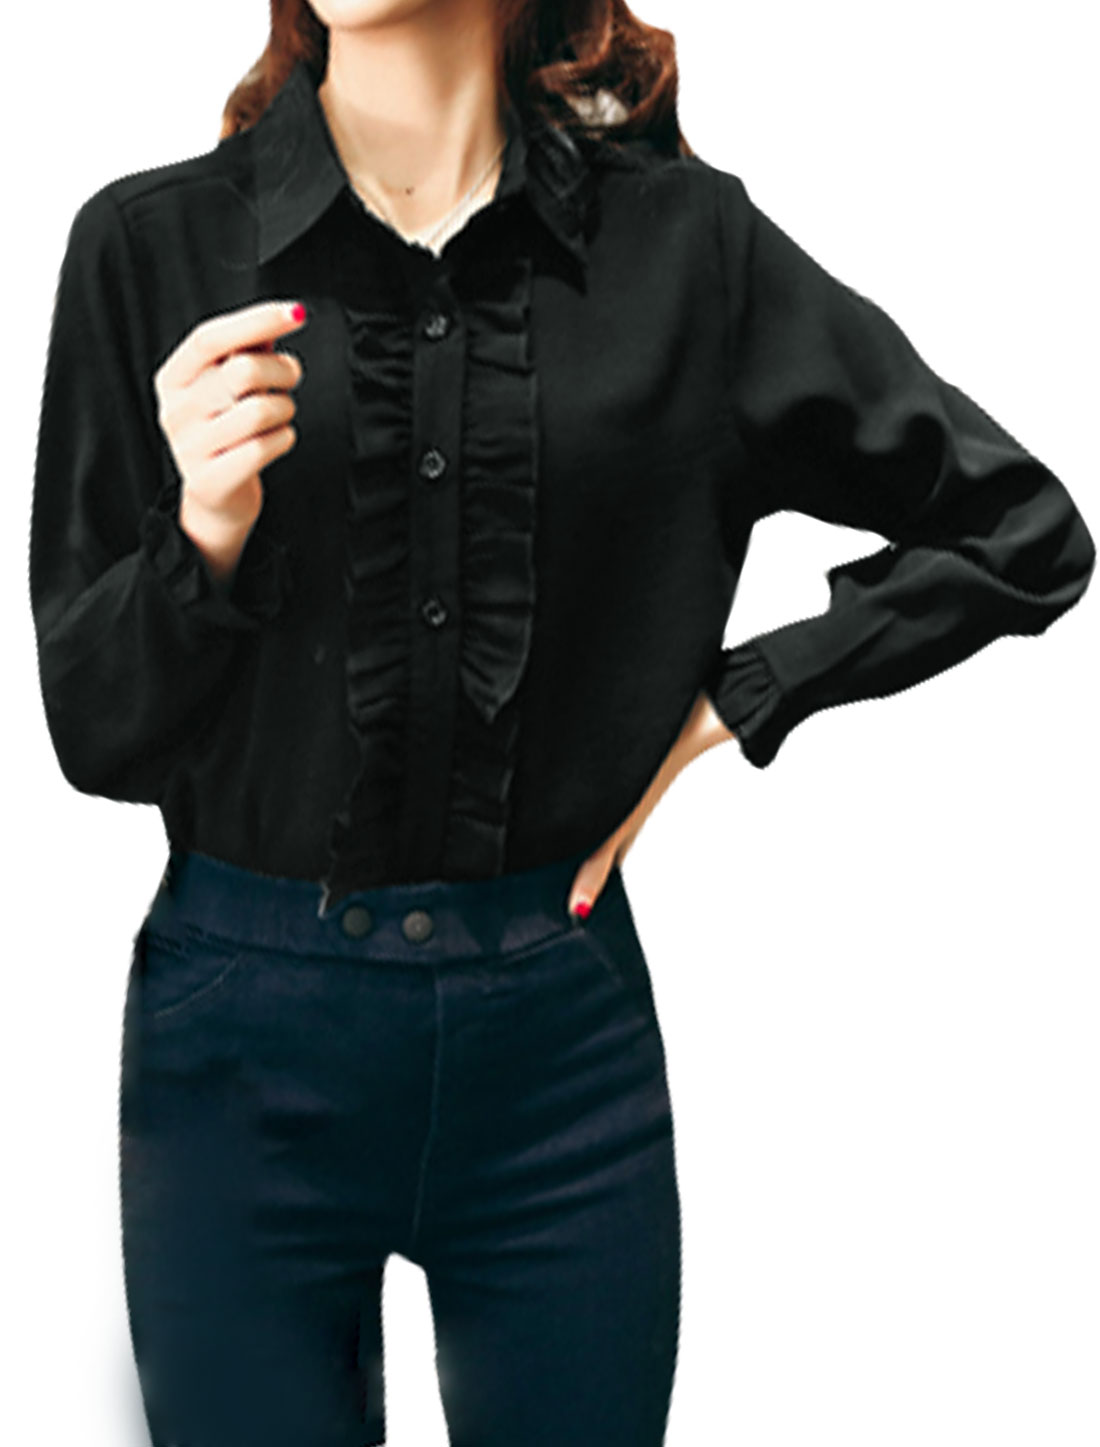 Women Point Collar Ruffled Front Single Breasted Blouse Black XS